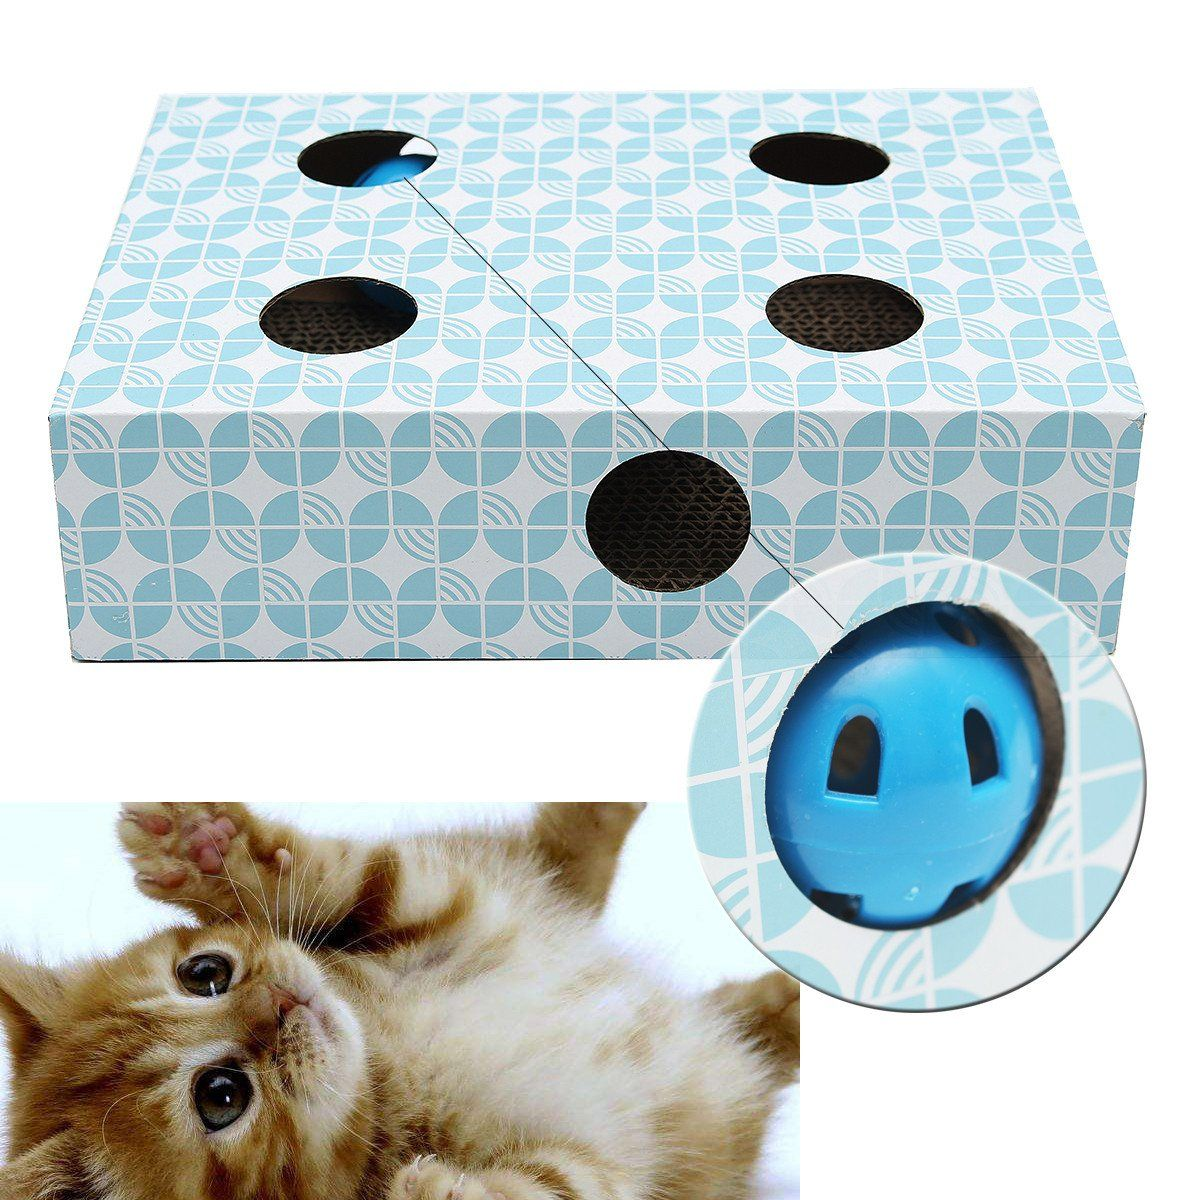 Pin On Cat Related Products